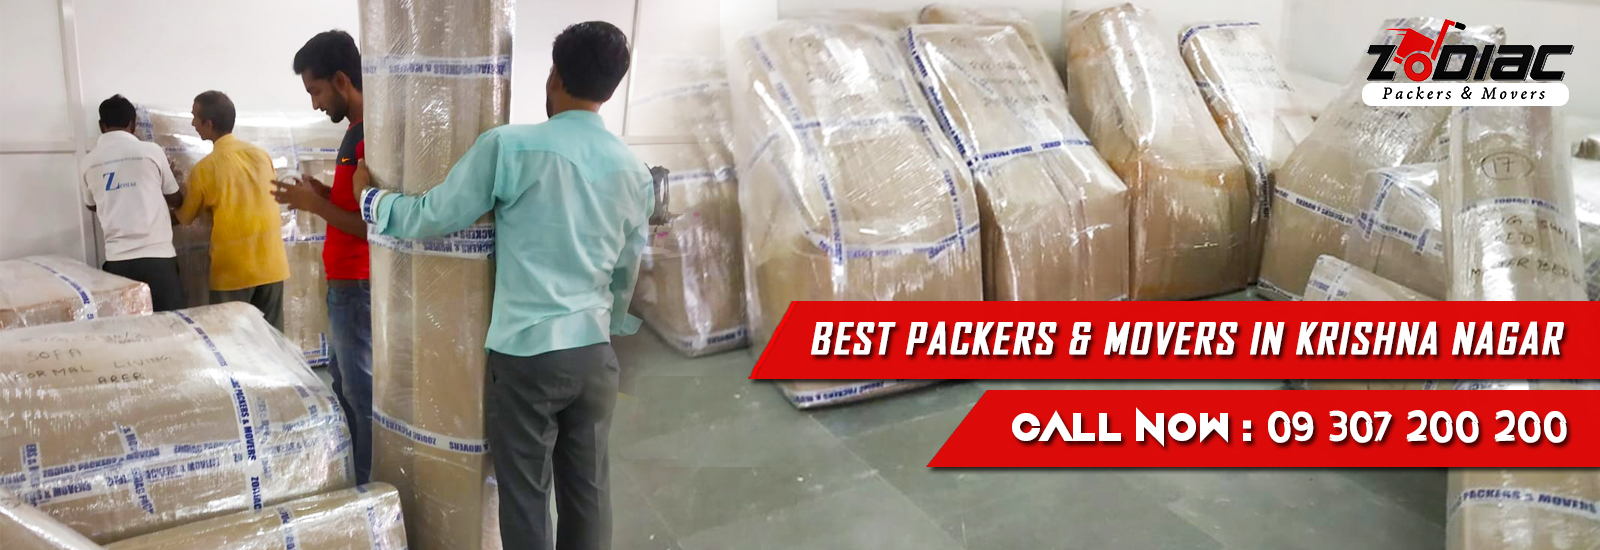 Packers and Movers in Krishna Nagar